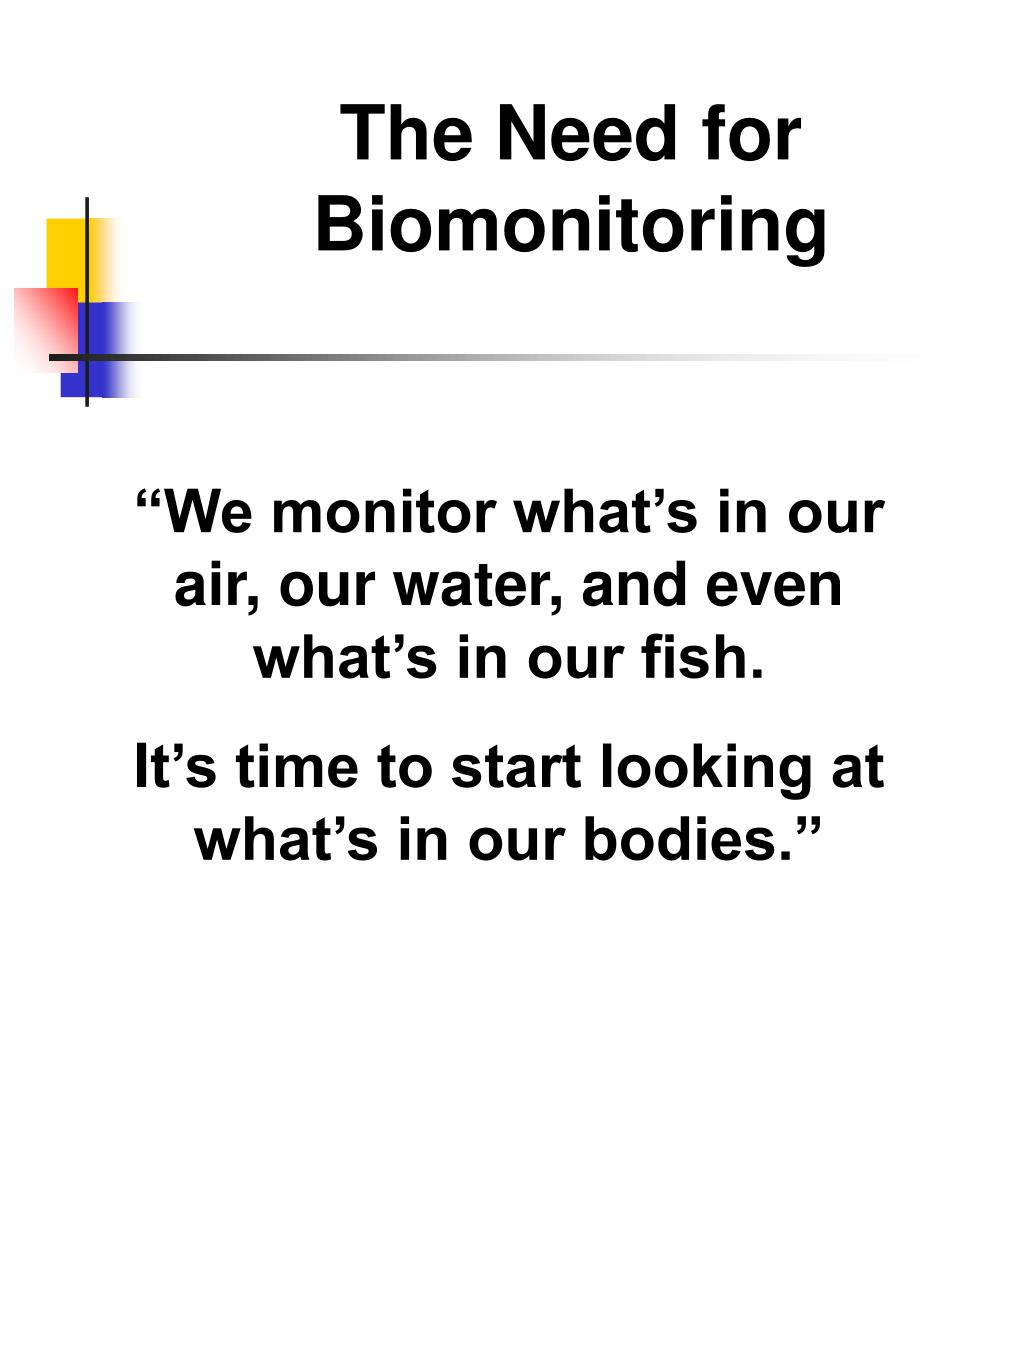 The Need for Biomonitoring